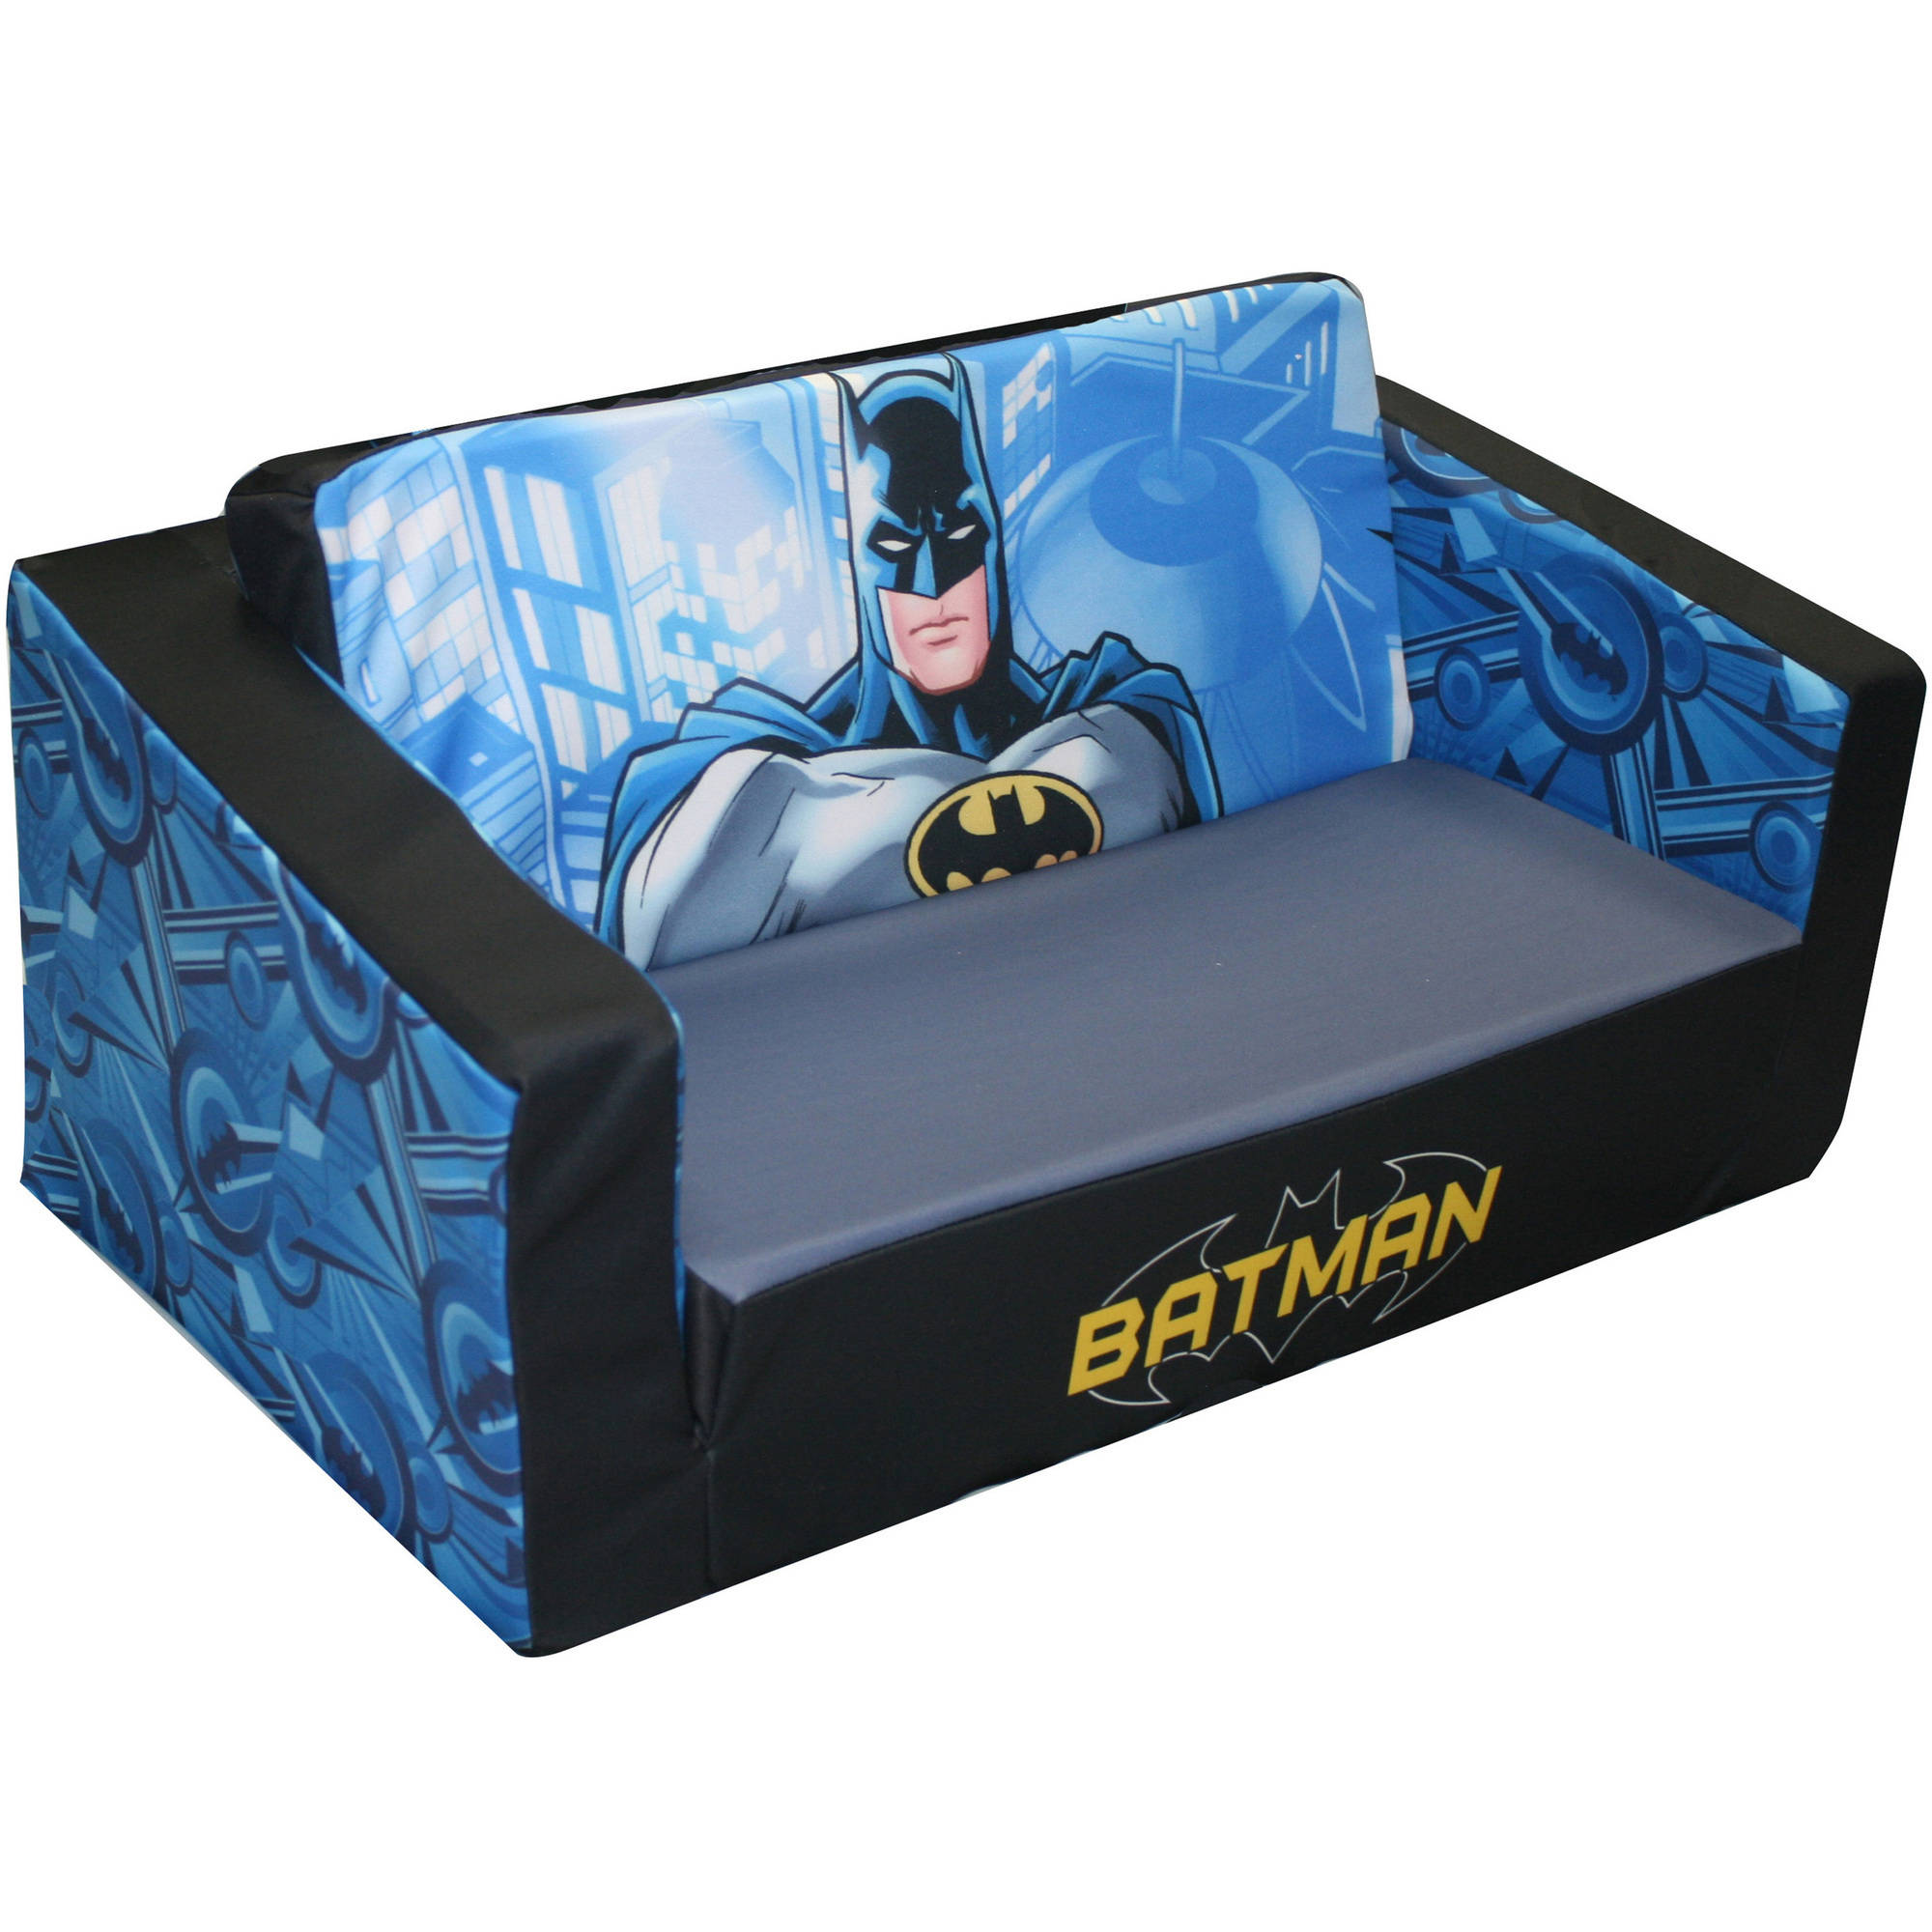 Batman Classic Animated Hero Flip Sofa   Walmart.com